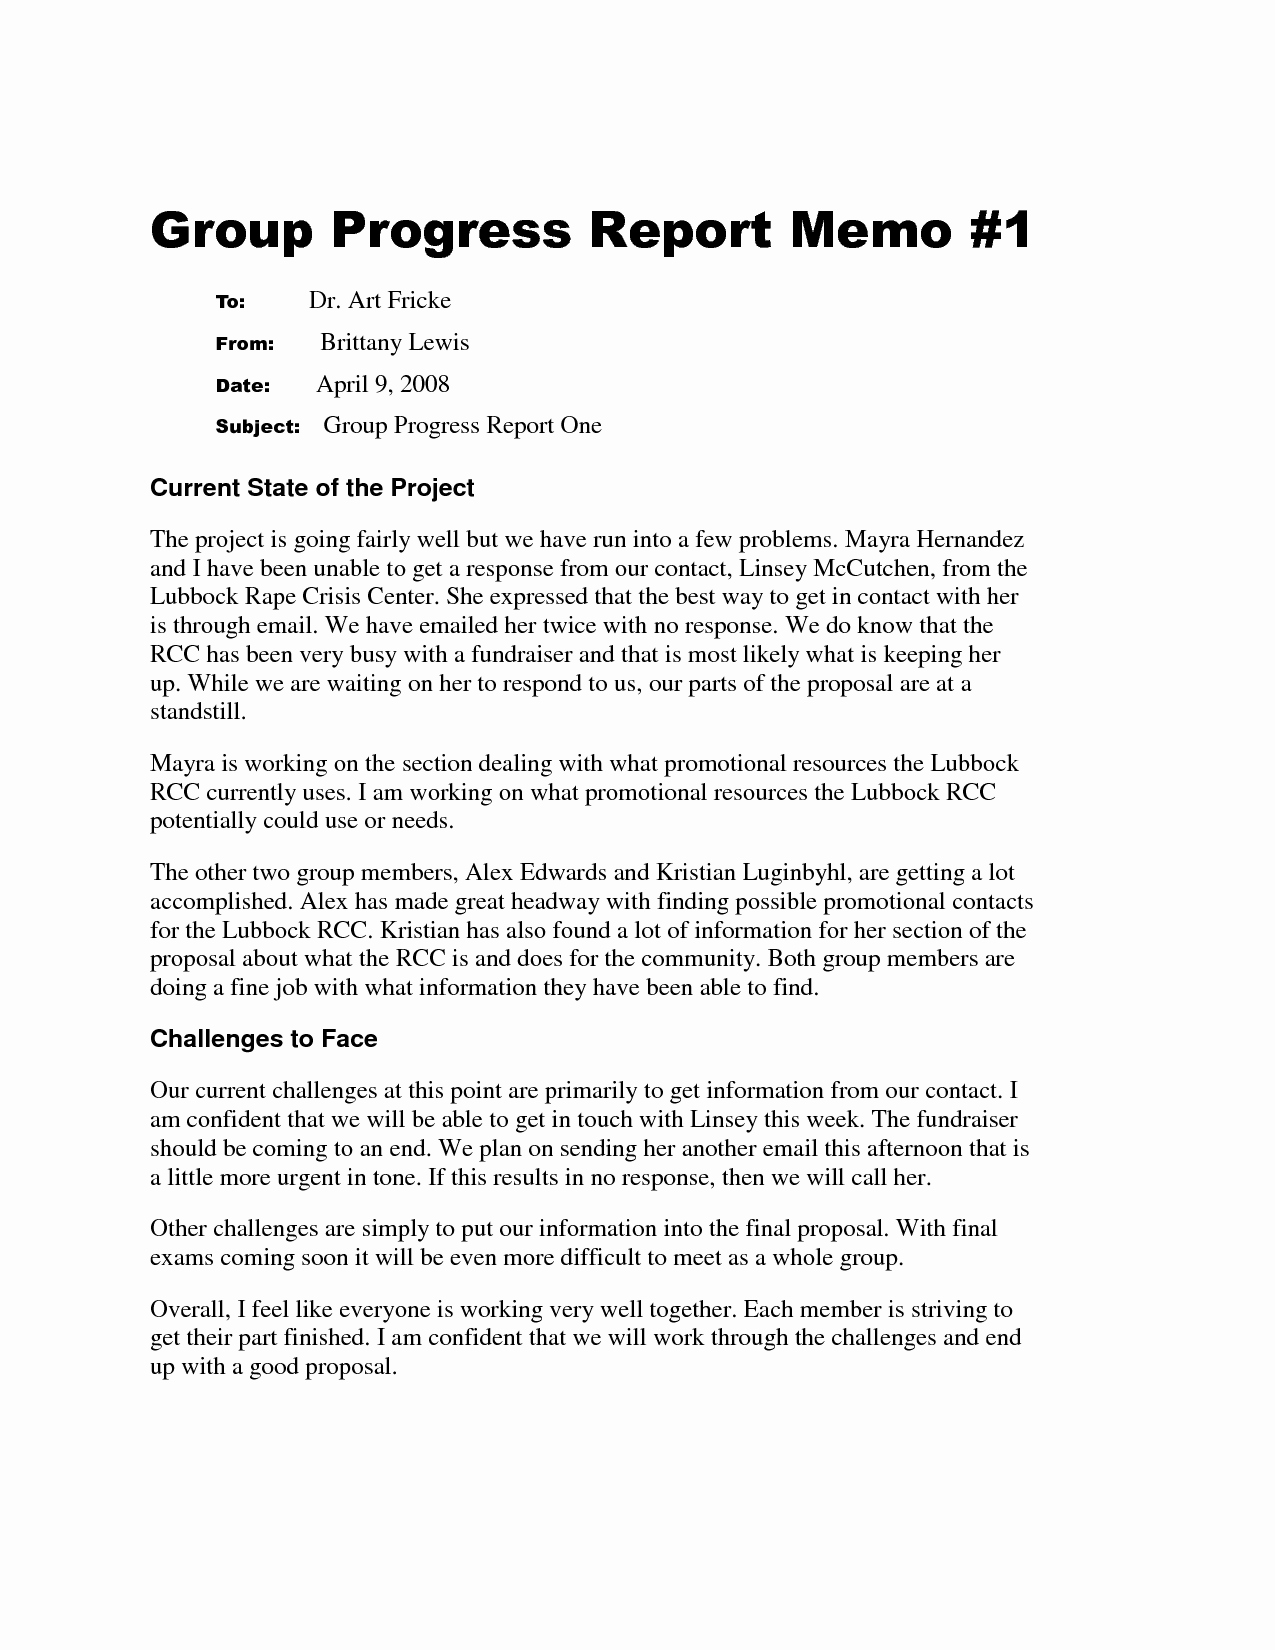 Example Of A Short Memo Fresh How to Write A Short Report In Memo format